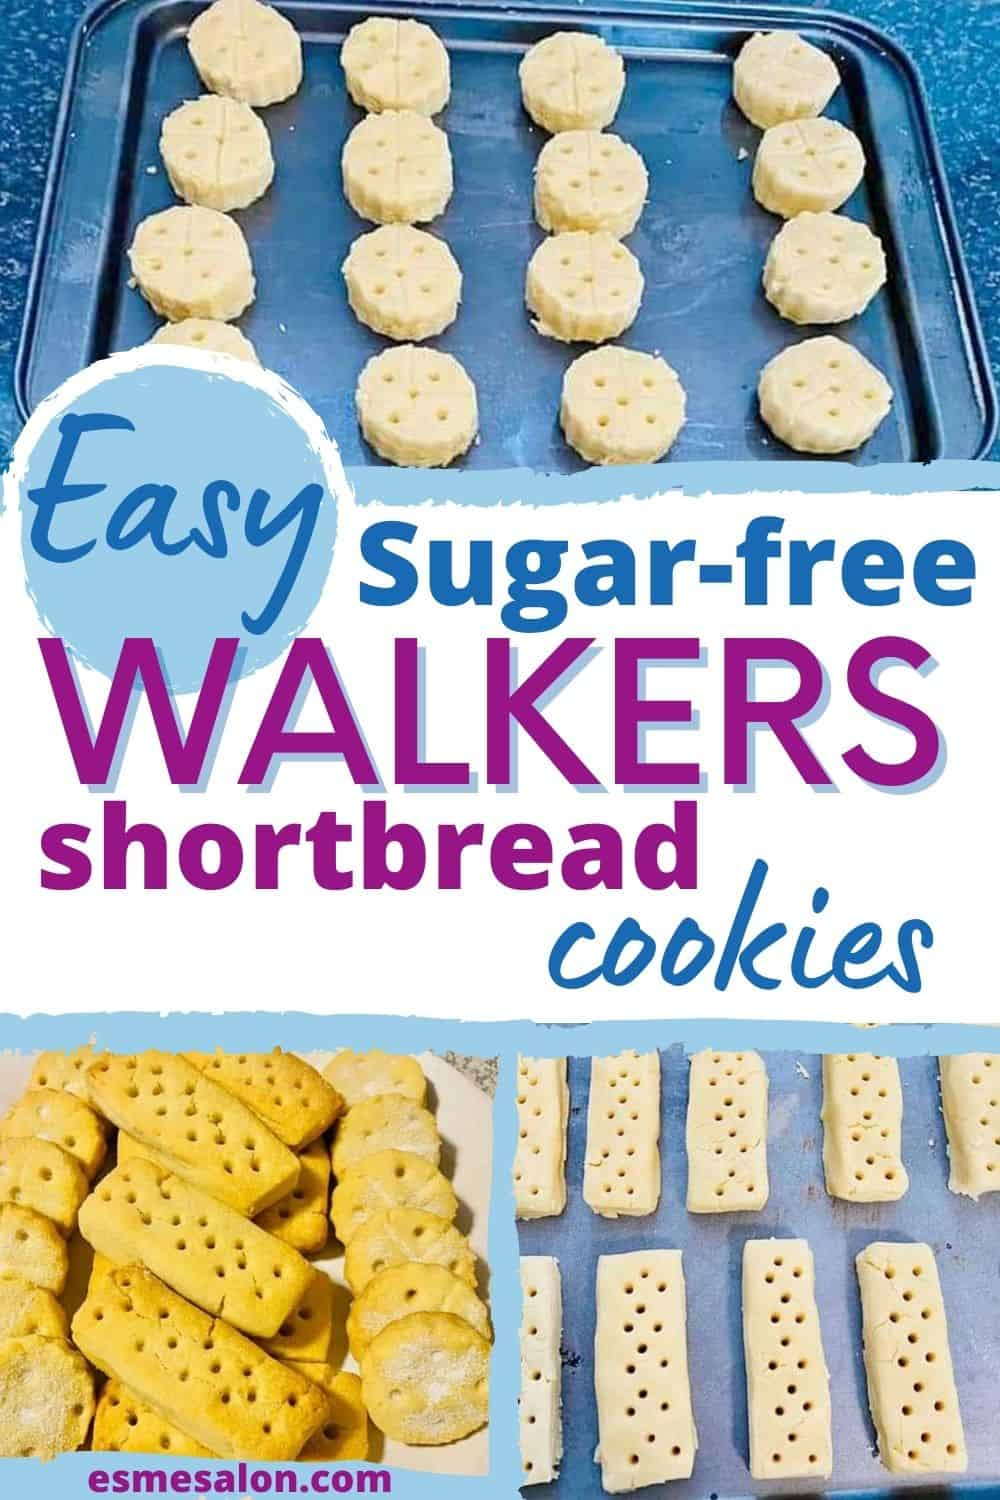 Melt in the mouth Sugar-Free Walkers Shortbread Cookies